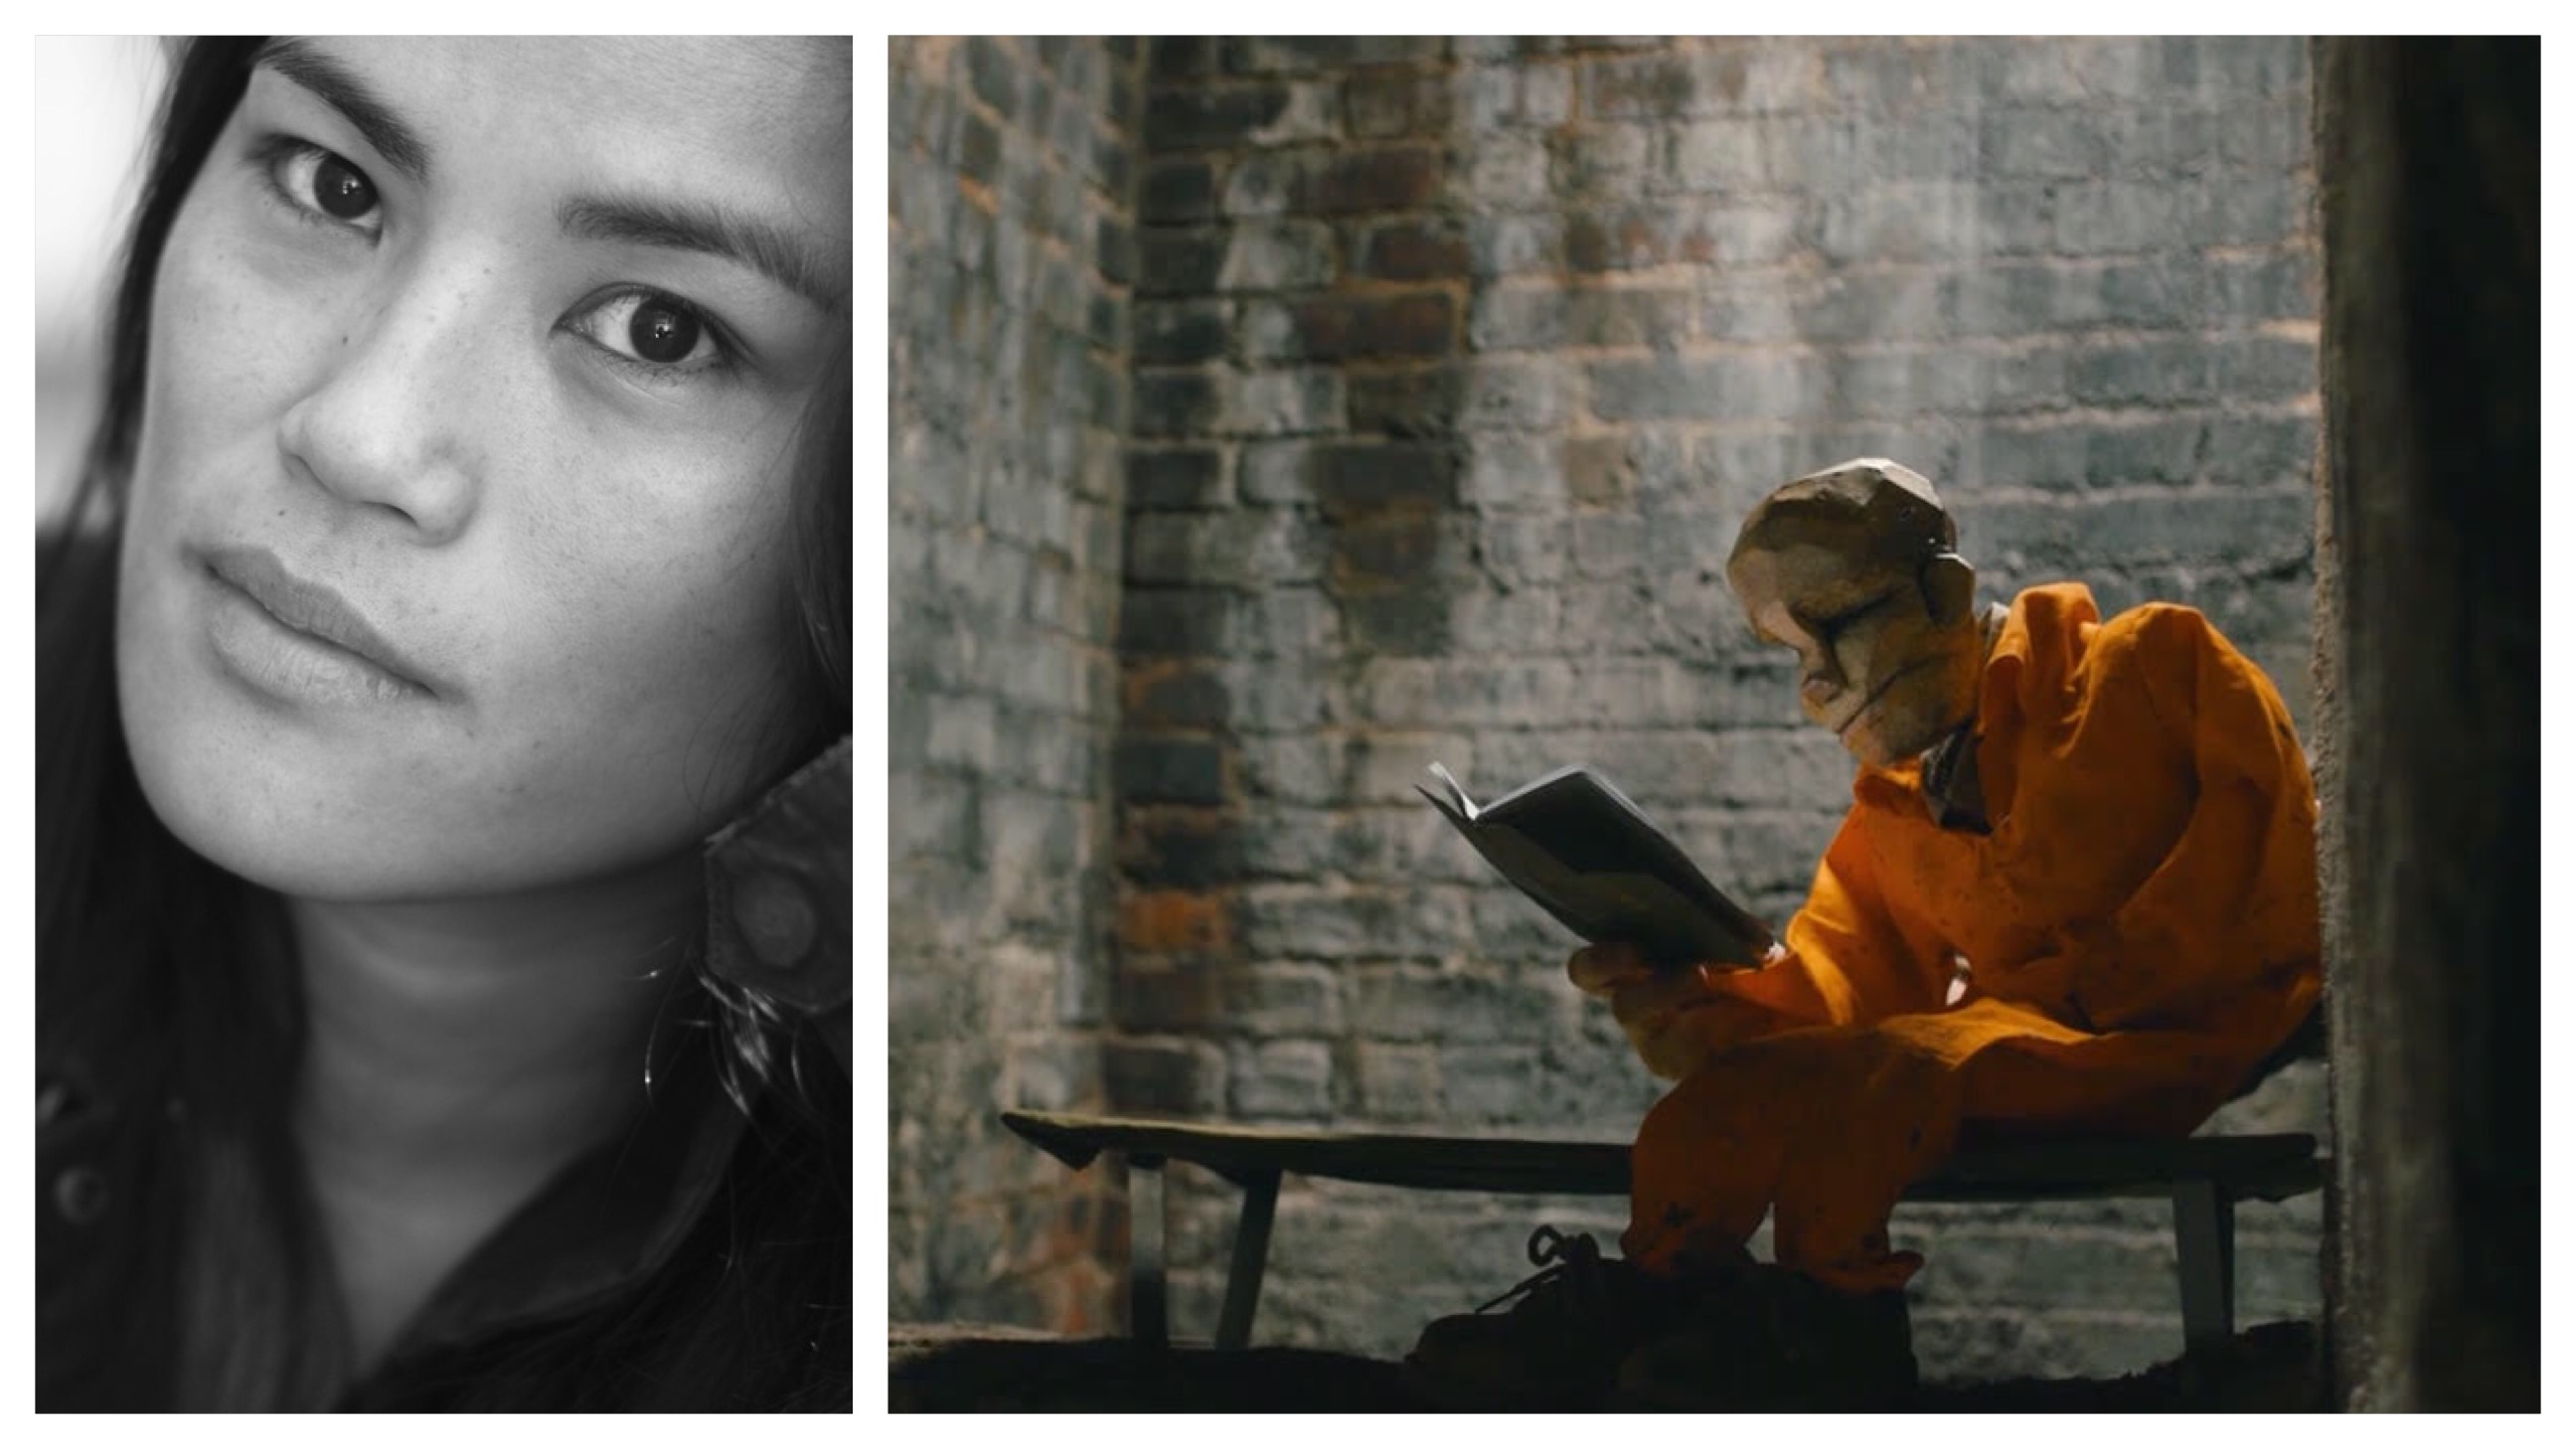 A mixed race Asian American woman looks into the camera in a close up black and white portrait; on the left is a still of an animated man wearing an orange jumpsuit inside a prison reading a book.